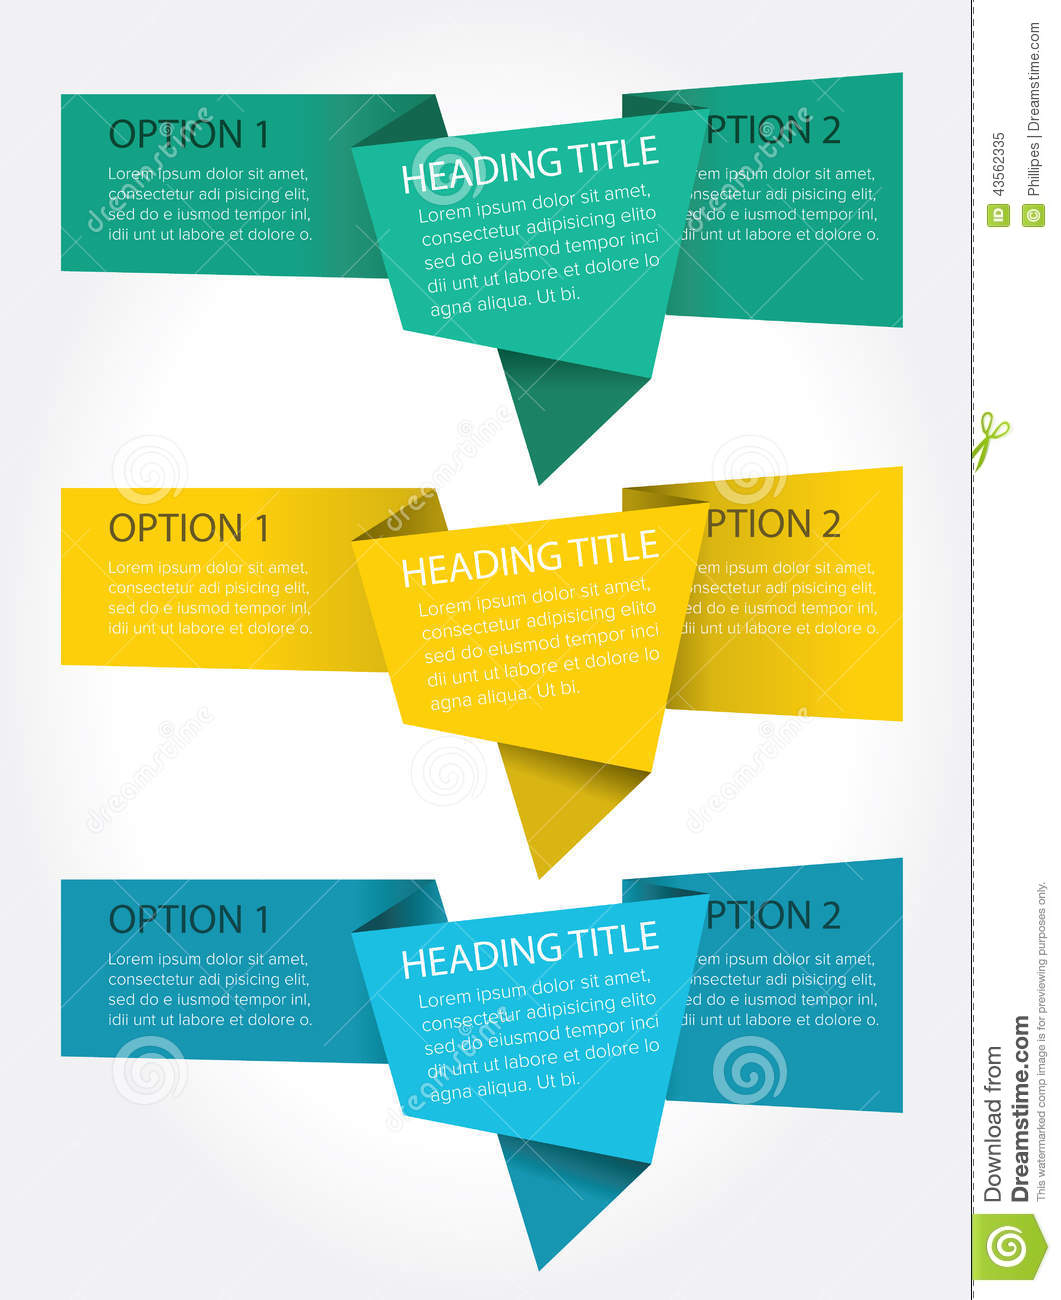 essay color advertising Essay color advertising fatal error: call to undefined function twentysixteen_post_thumbnail() in /opt/httpdocs/asterathome/wp-content/themes/asterhome/template.